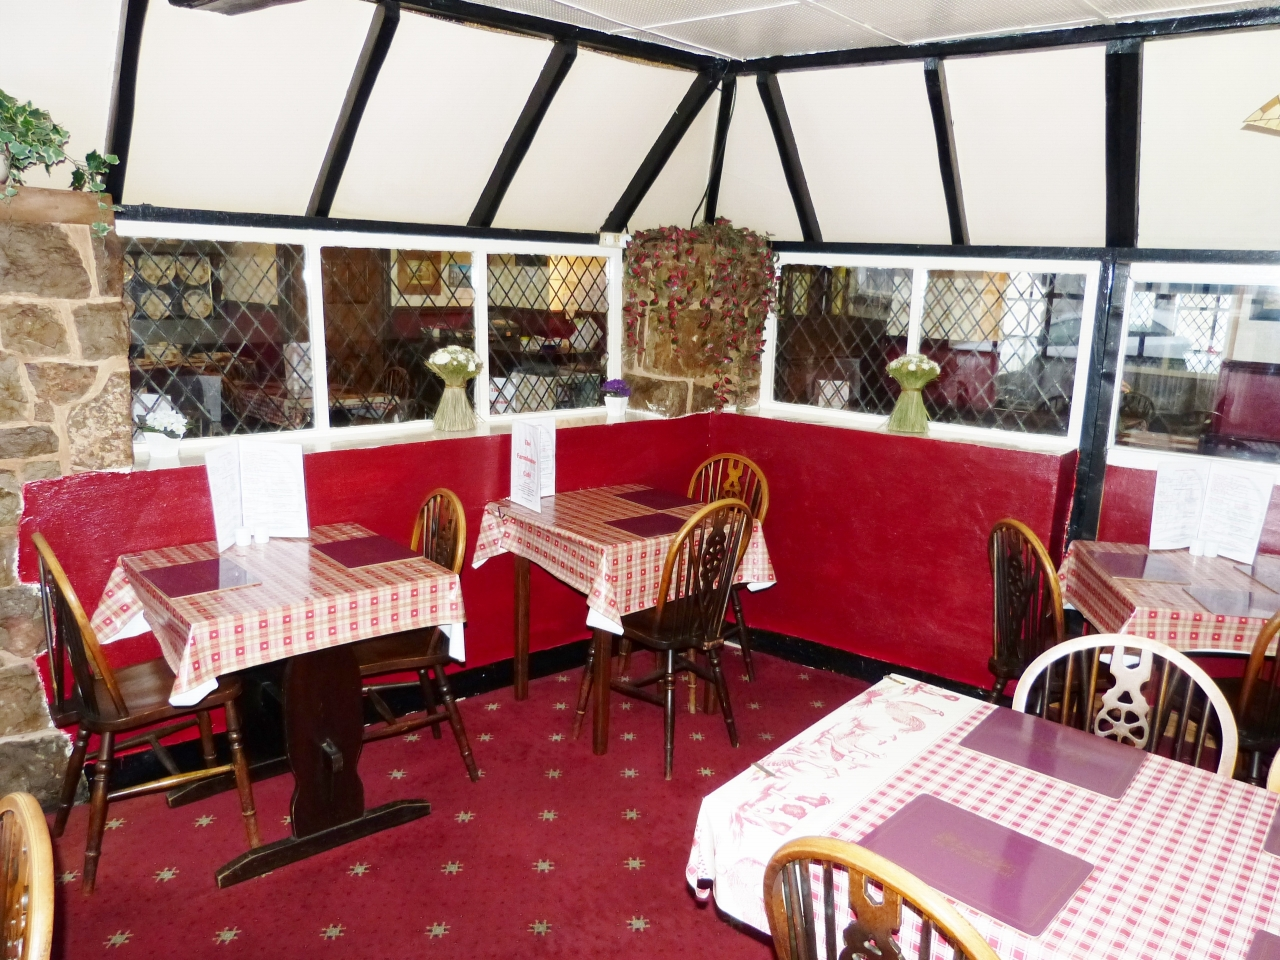 Restaurant For Sale in Abergele - Photograph 4